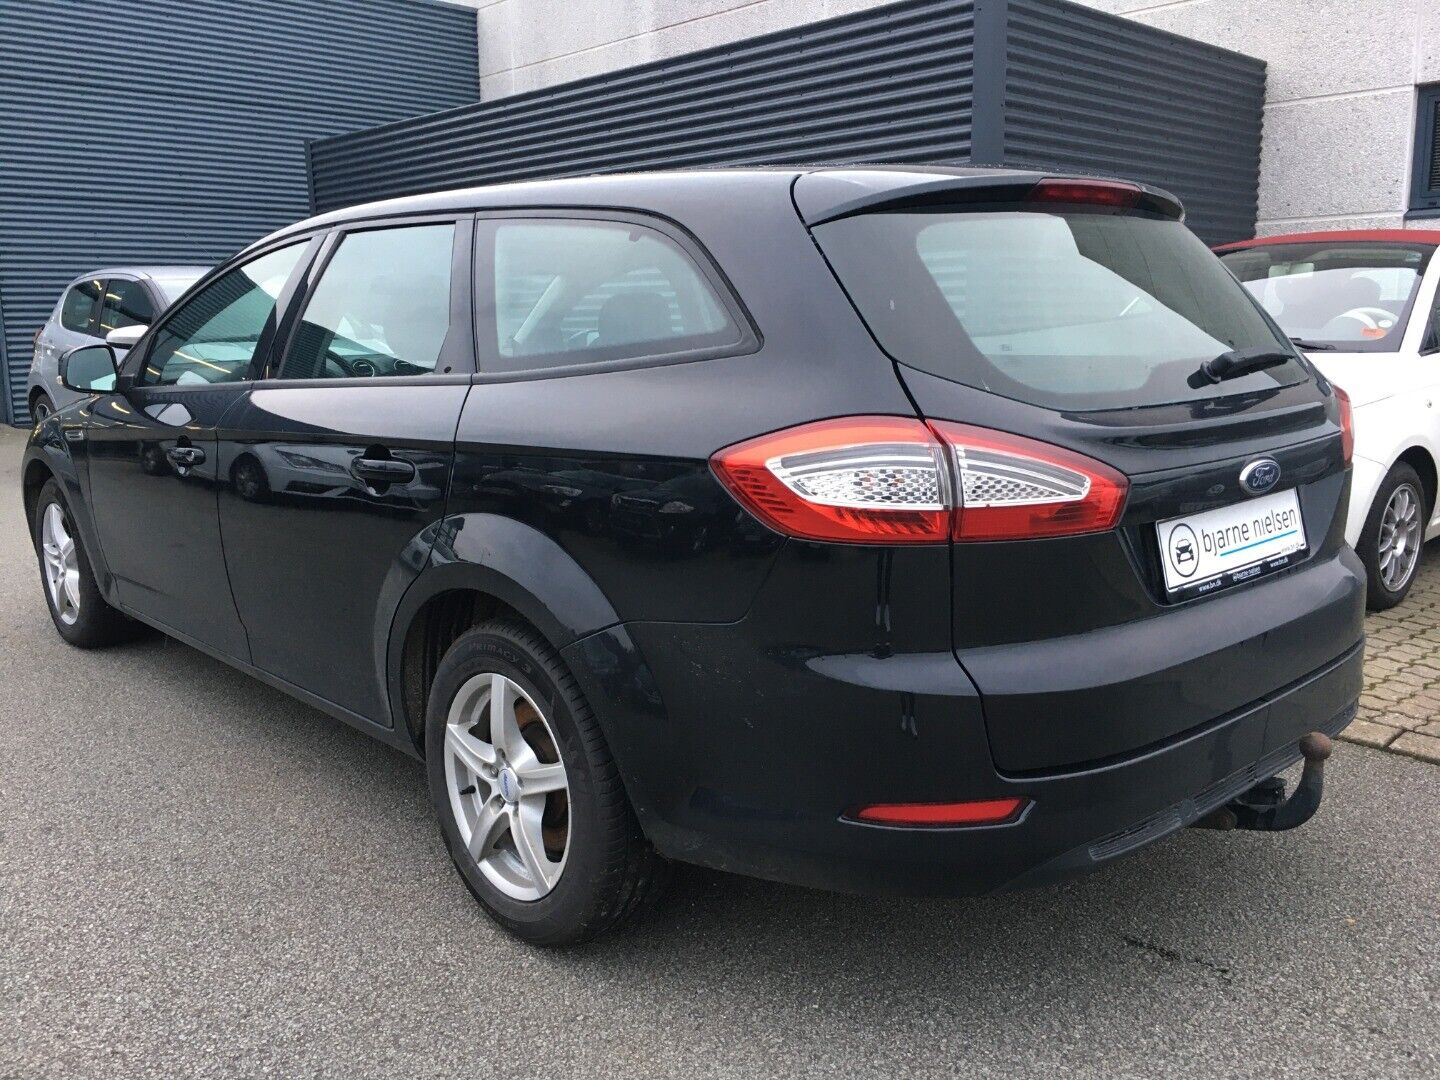 Ford Mondeo 2,0 TDCi 140 Trend stc. aut. - billede 3